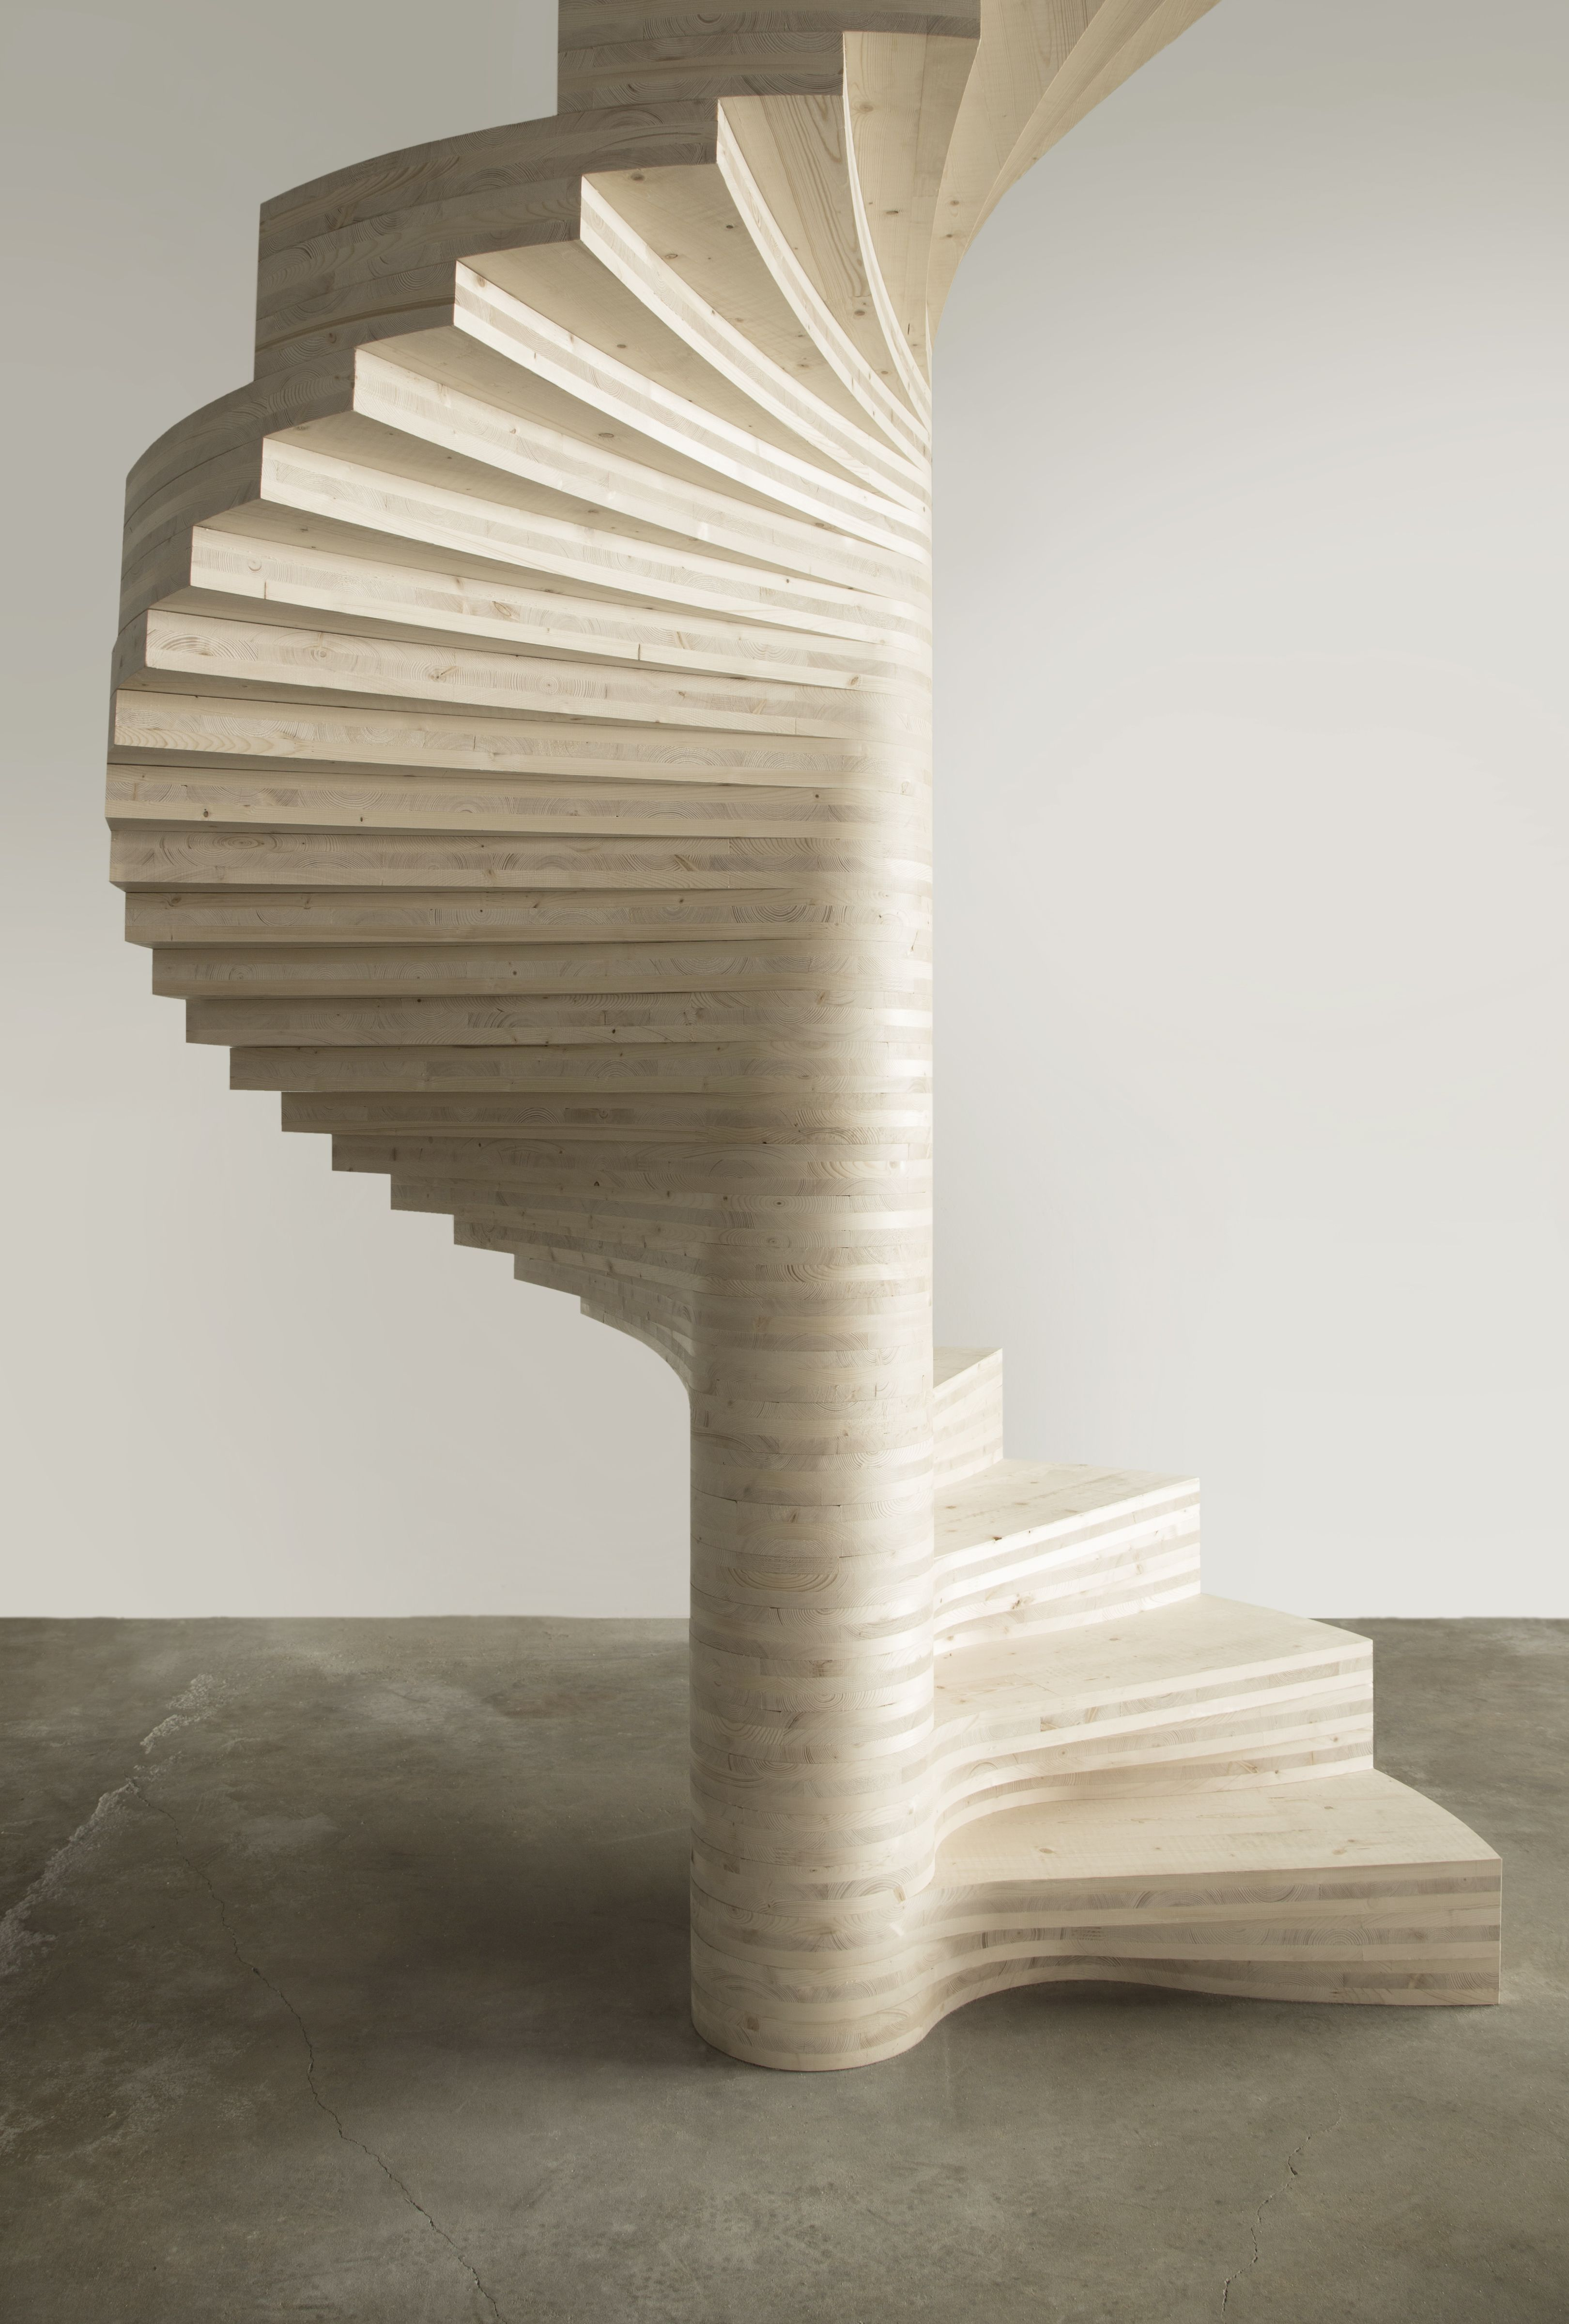 Best Spiral Staircase Made In Solid Wood Design By Tron Meyer 640 x 480